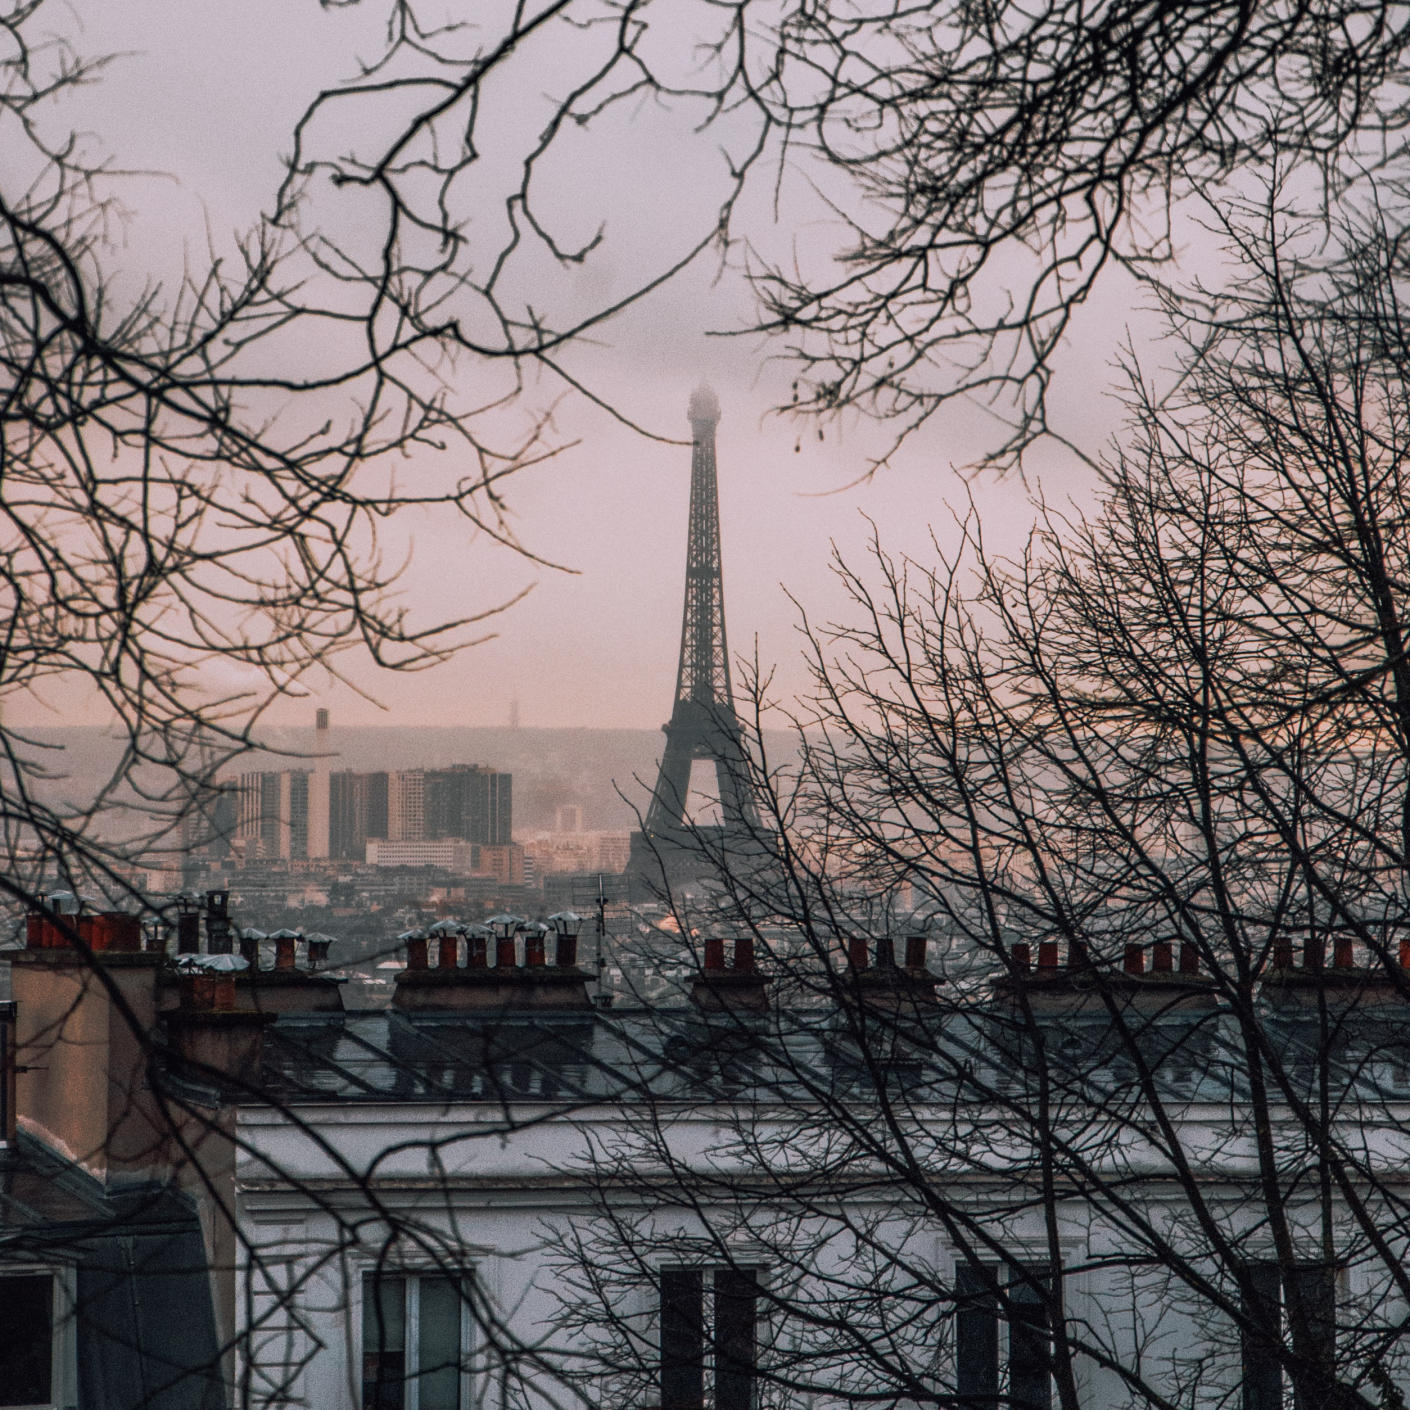 The Eiffel tower shot from a distance capturing a dusky view between foliage.